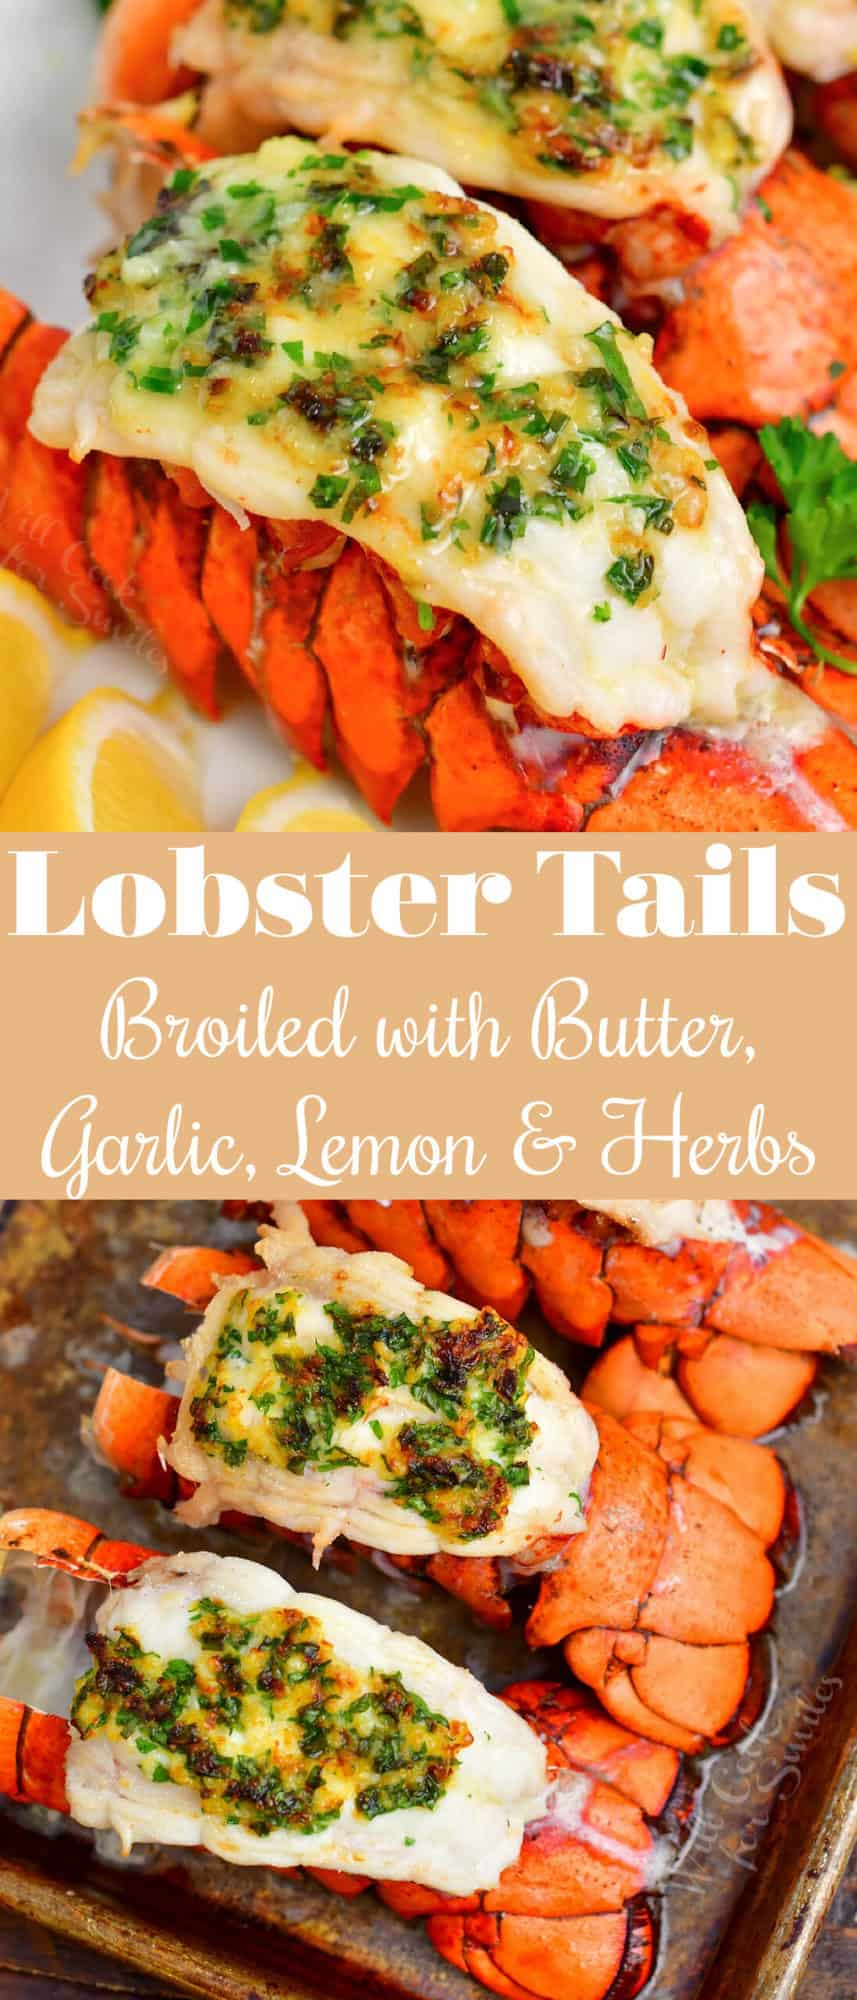 titled image for Pinterest shows broiled lobster tails